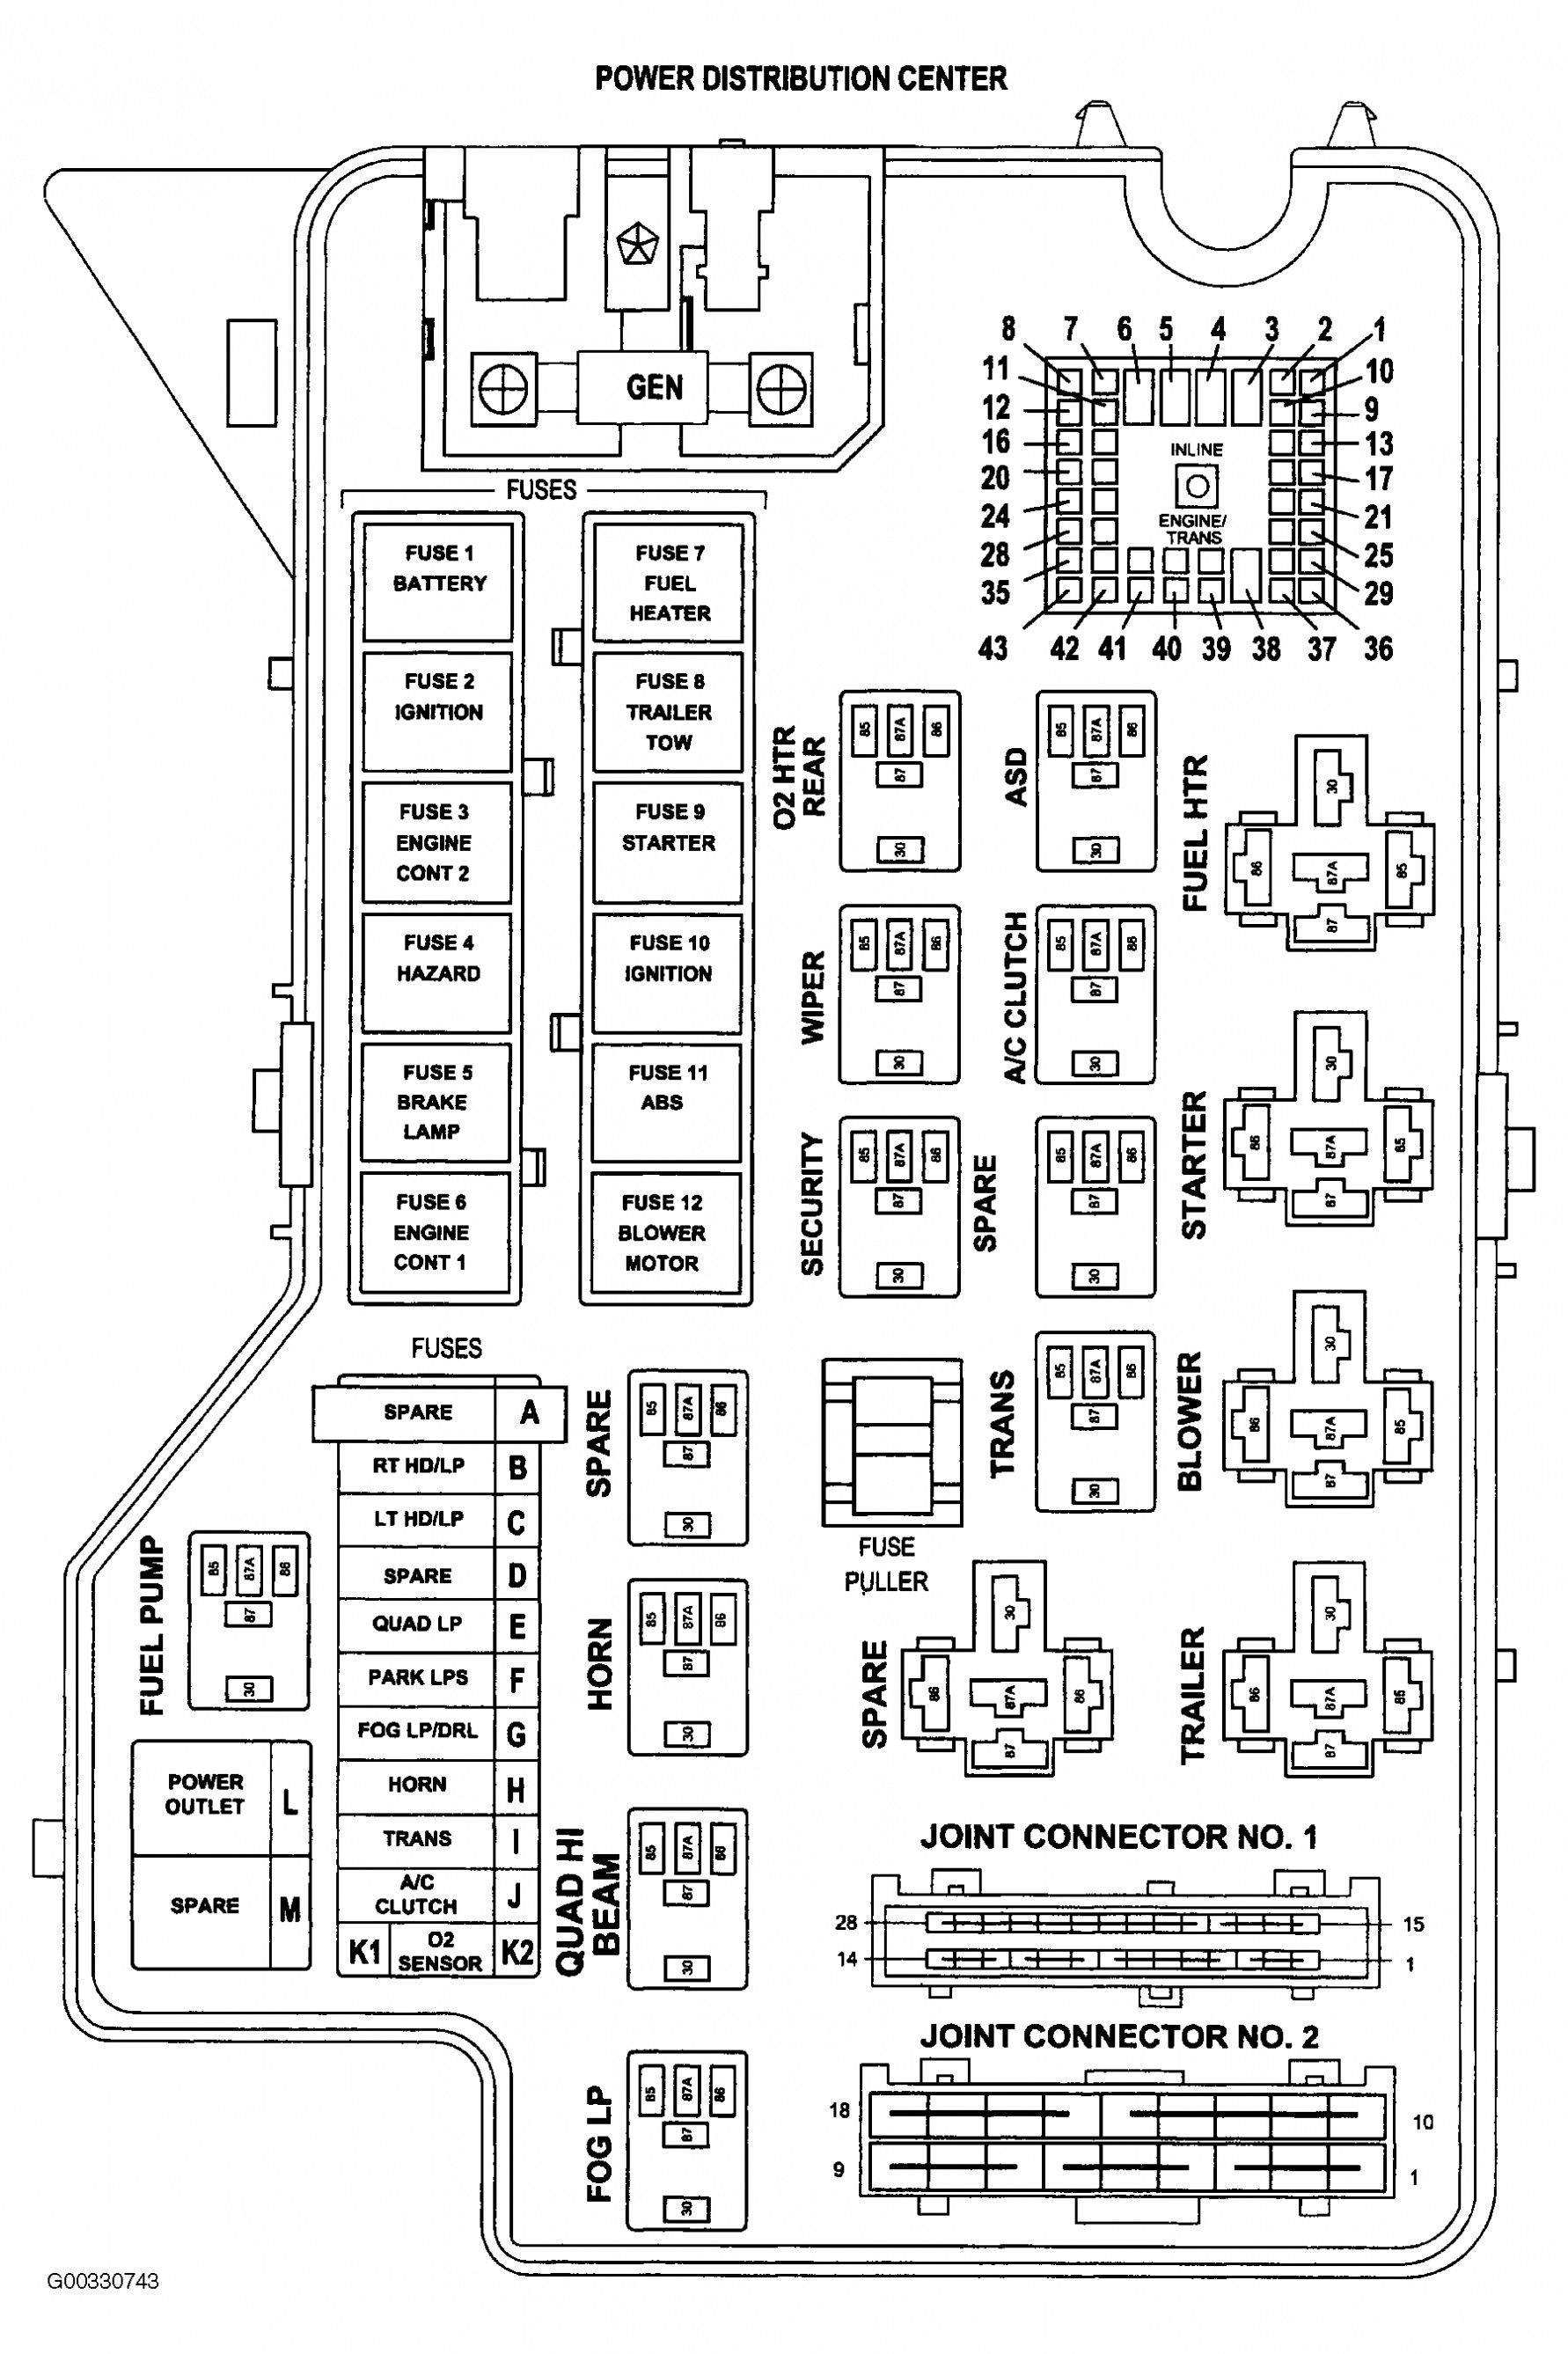 New Wiring Diagram for 1999 Dodge Ram 1500 Radio #diagram